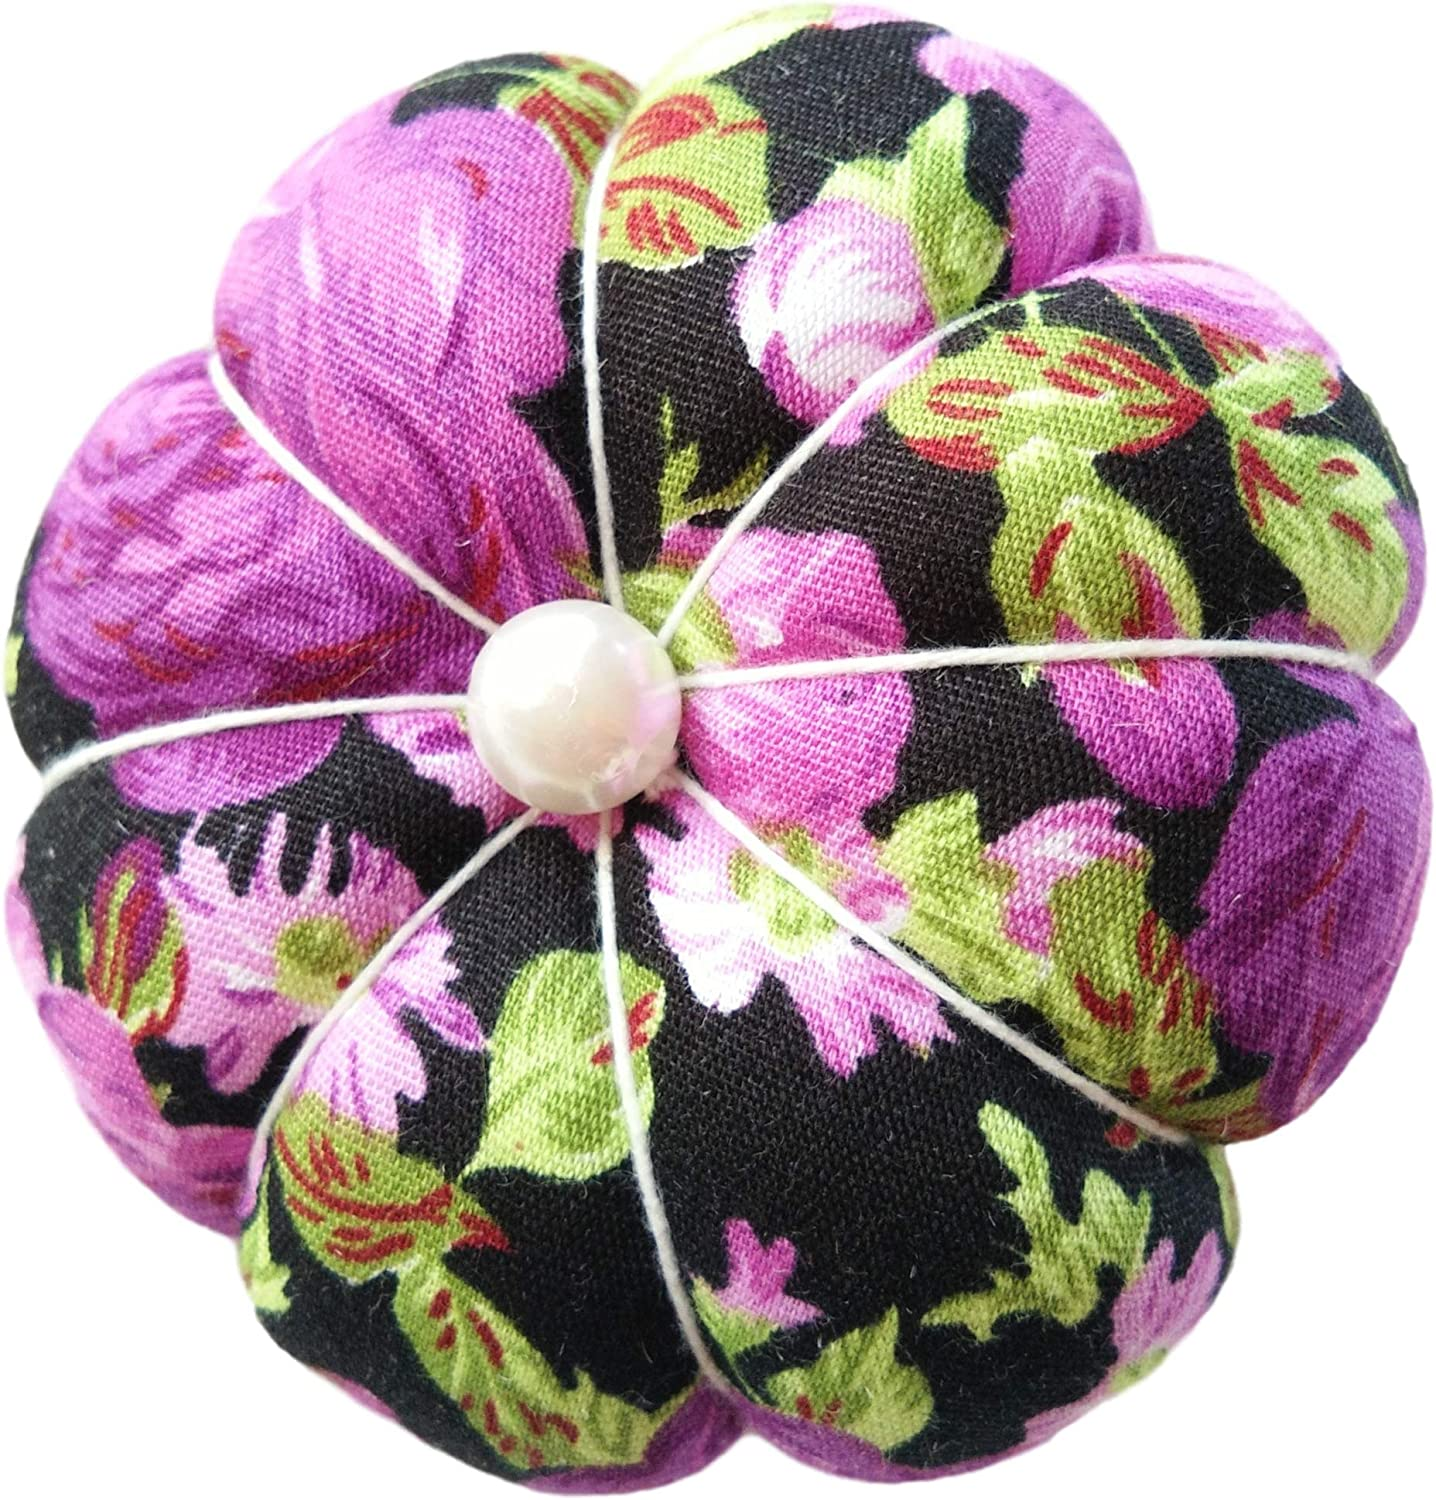 CUSHYSTORE Purple on Black Floral Flower Wrist Pin Needle Cushion Pincushion for Sewing with Adjustable Elastic Strap Fit All Wrist Sizes